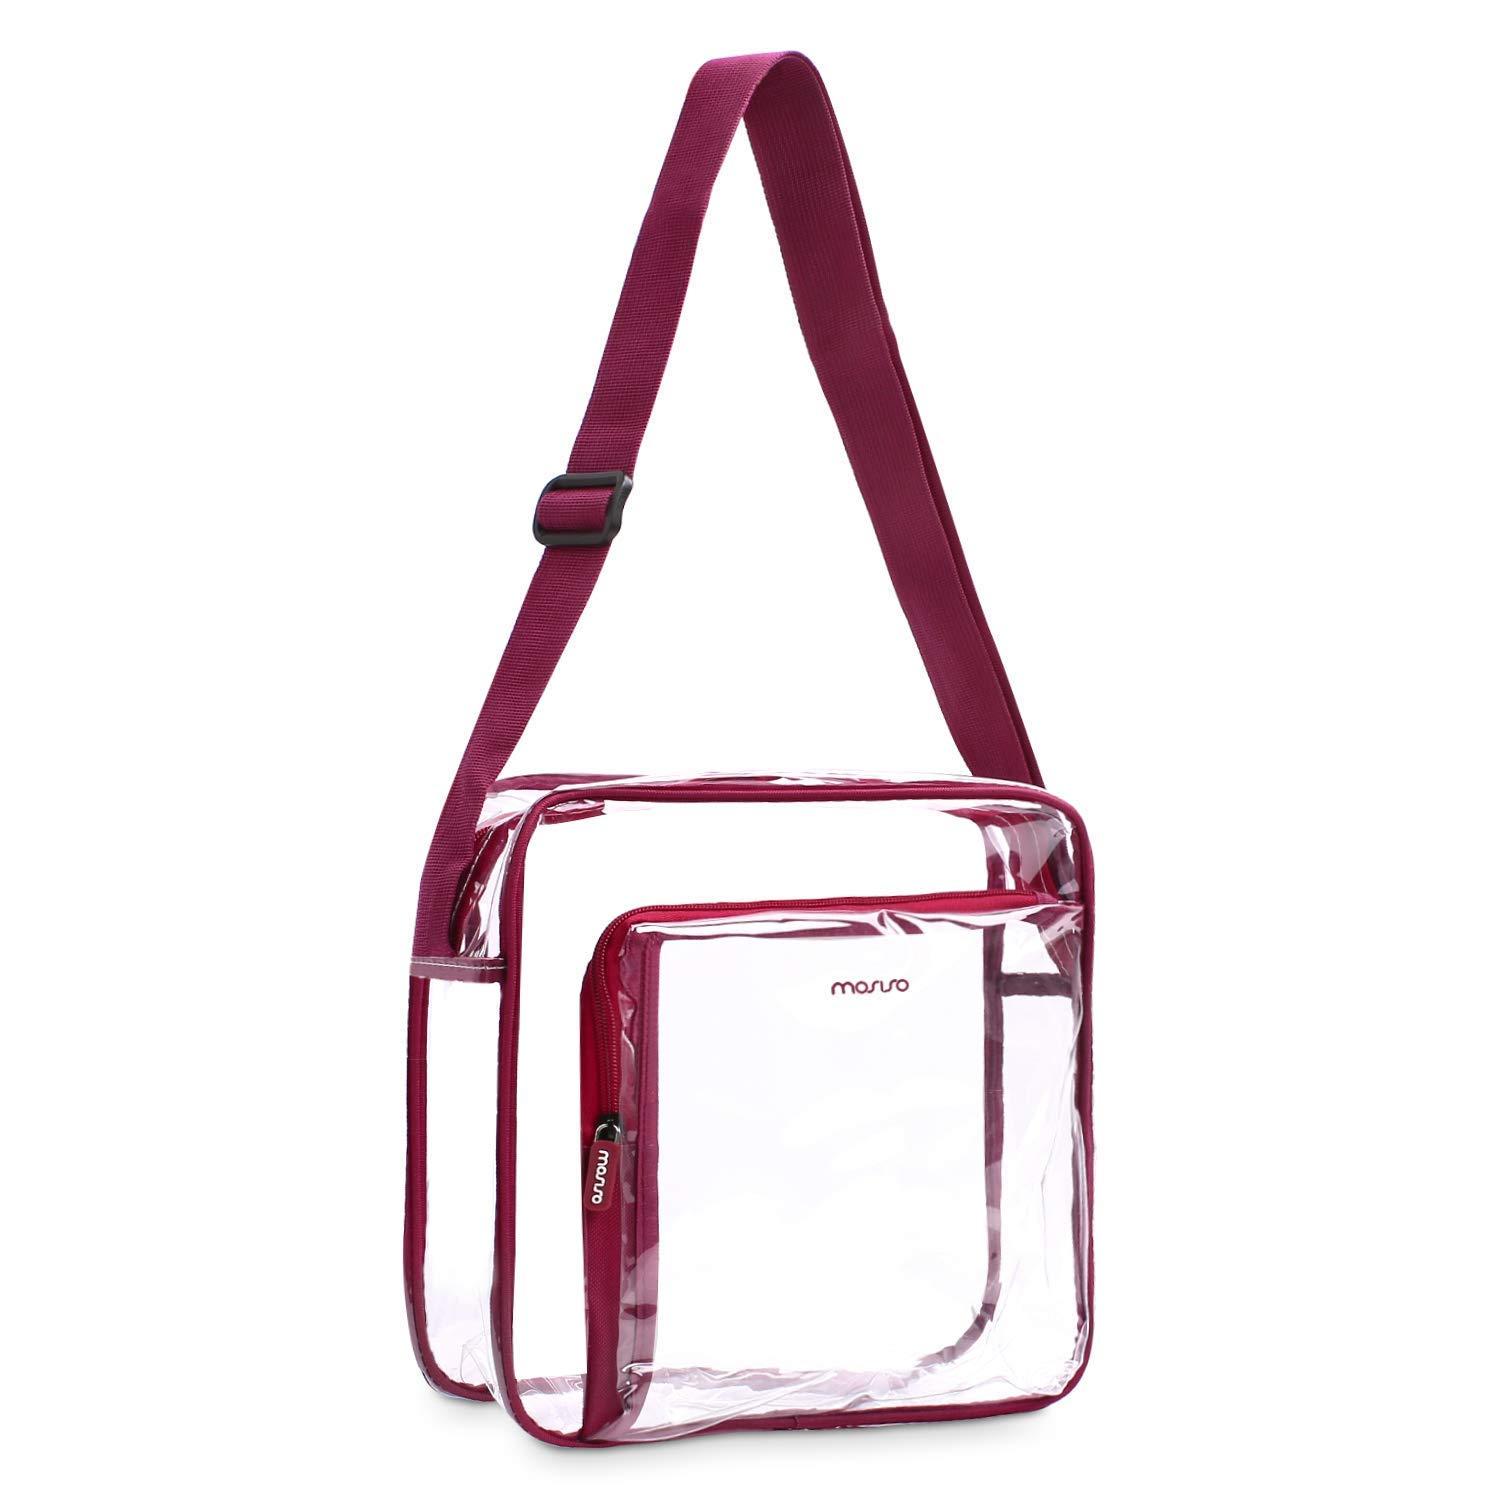 Mosiso Crossbody Bag TSA/NFL / NCAA Stadium Approved Transparent Waterproof Zippered Shoulder Messenger Satchel for Men/Women, Shopping/Beach / Travel, Clear & Wine Red